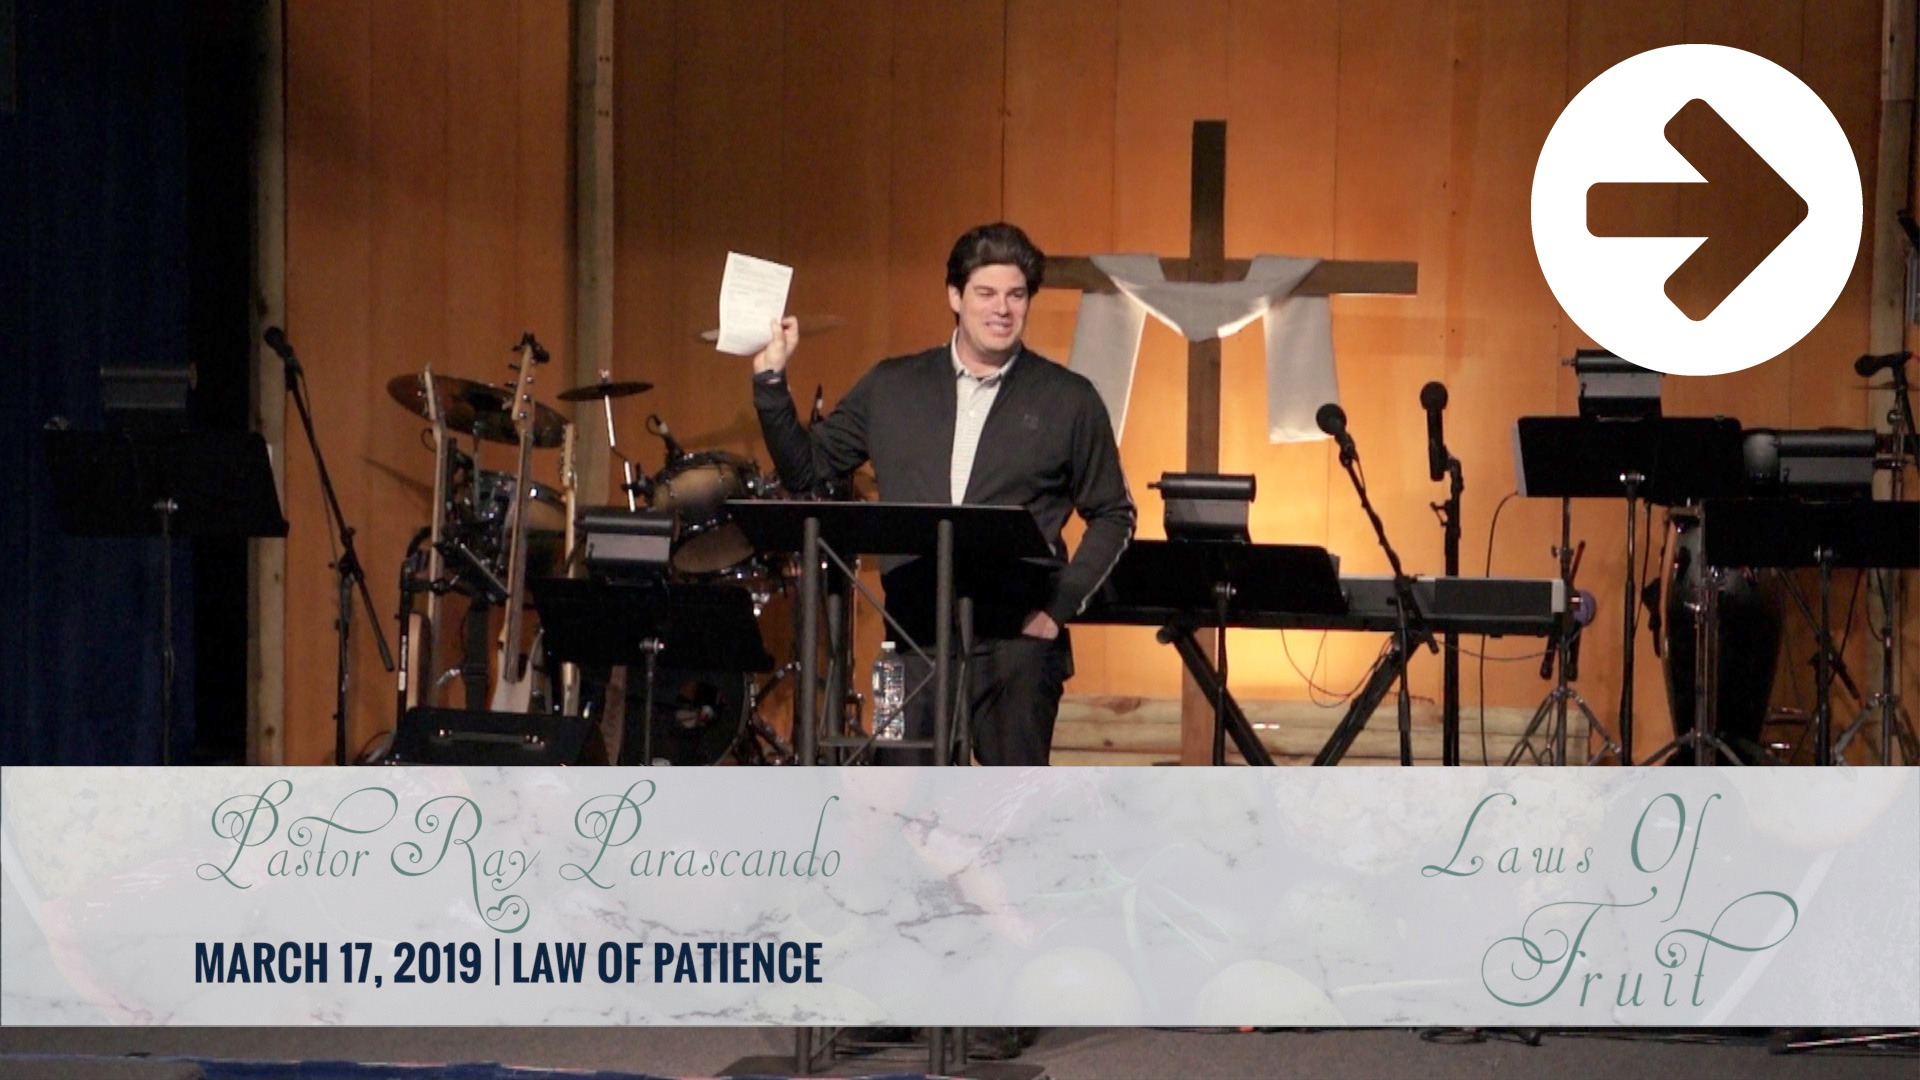 Law Of Patience Image